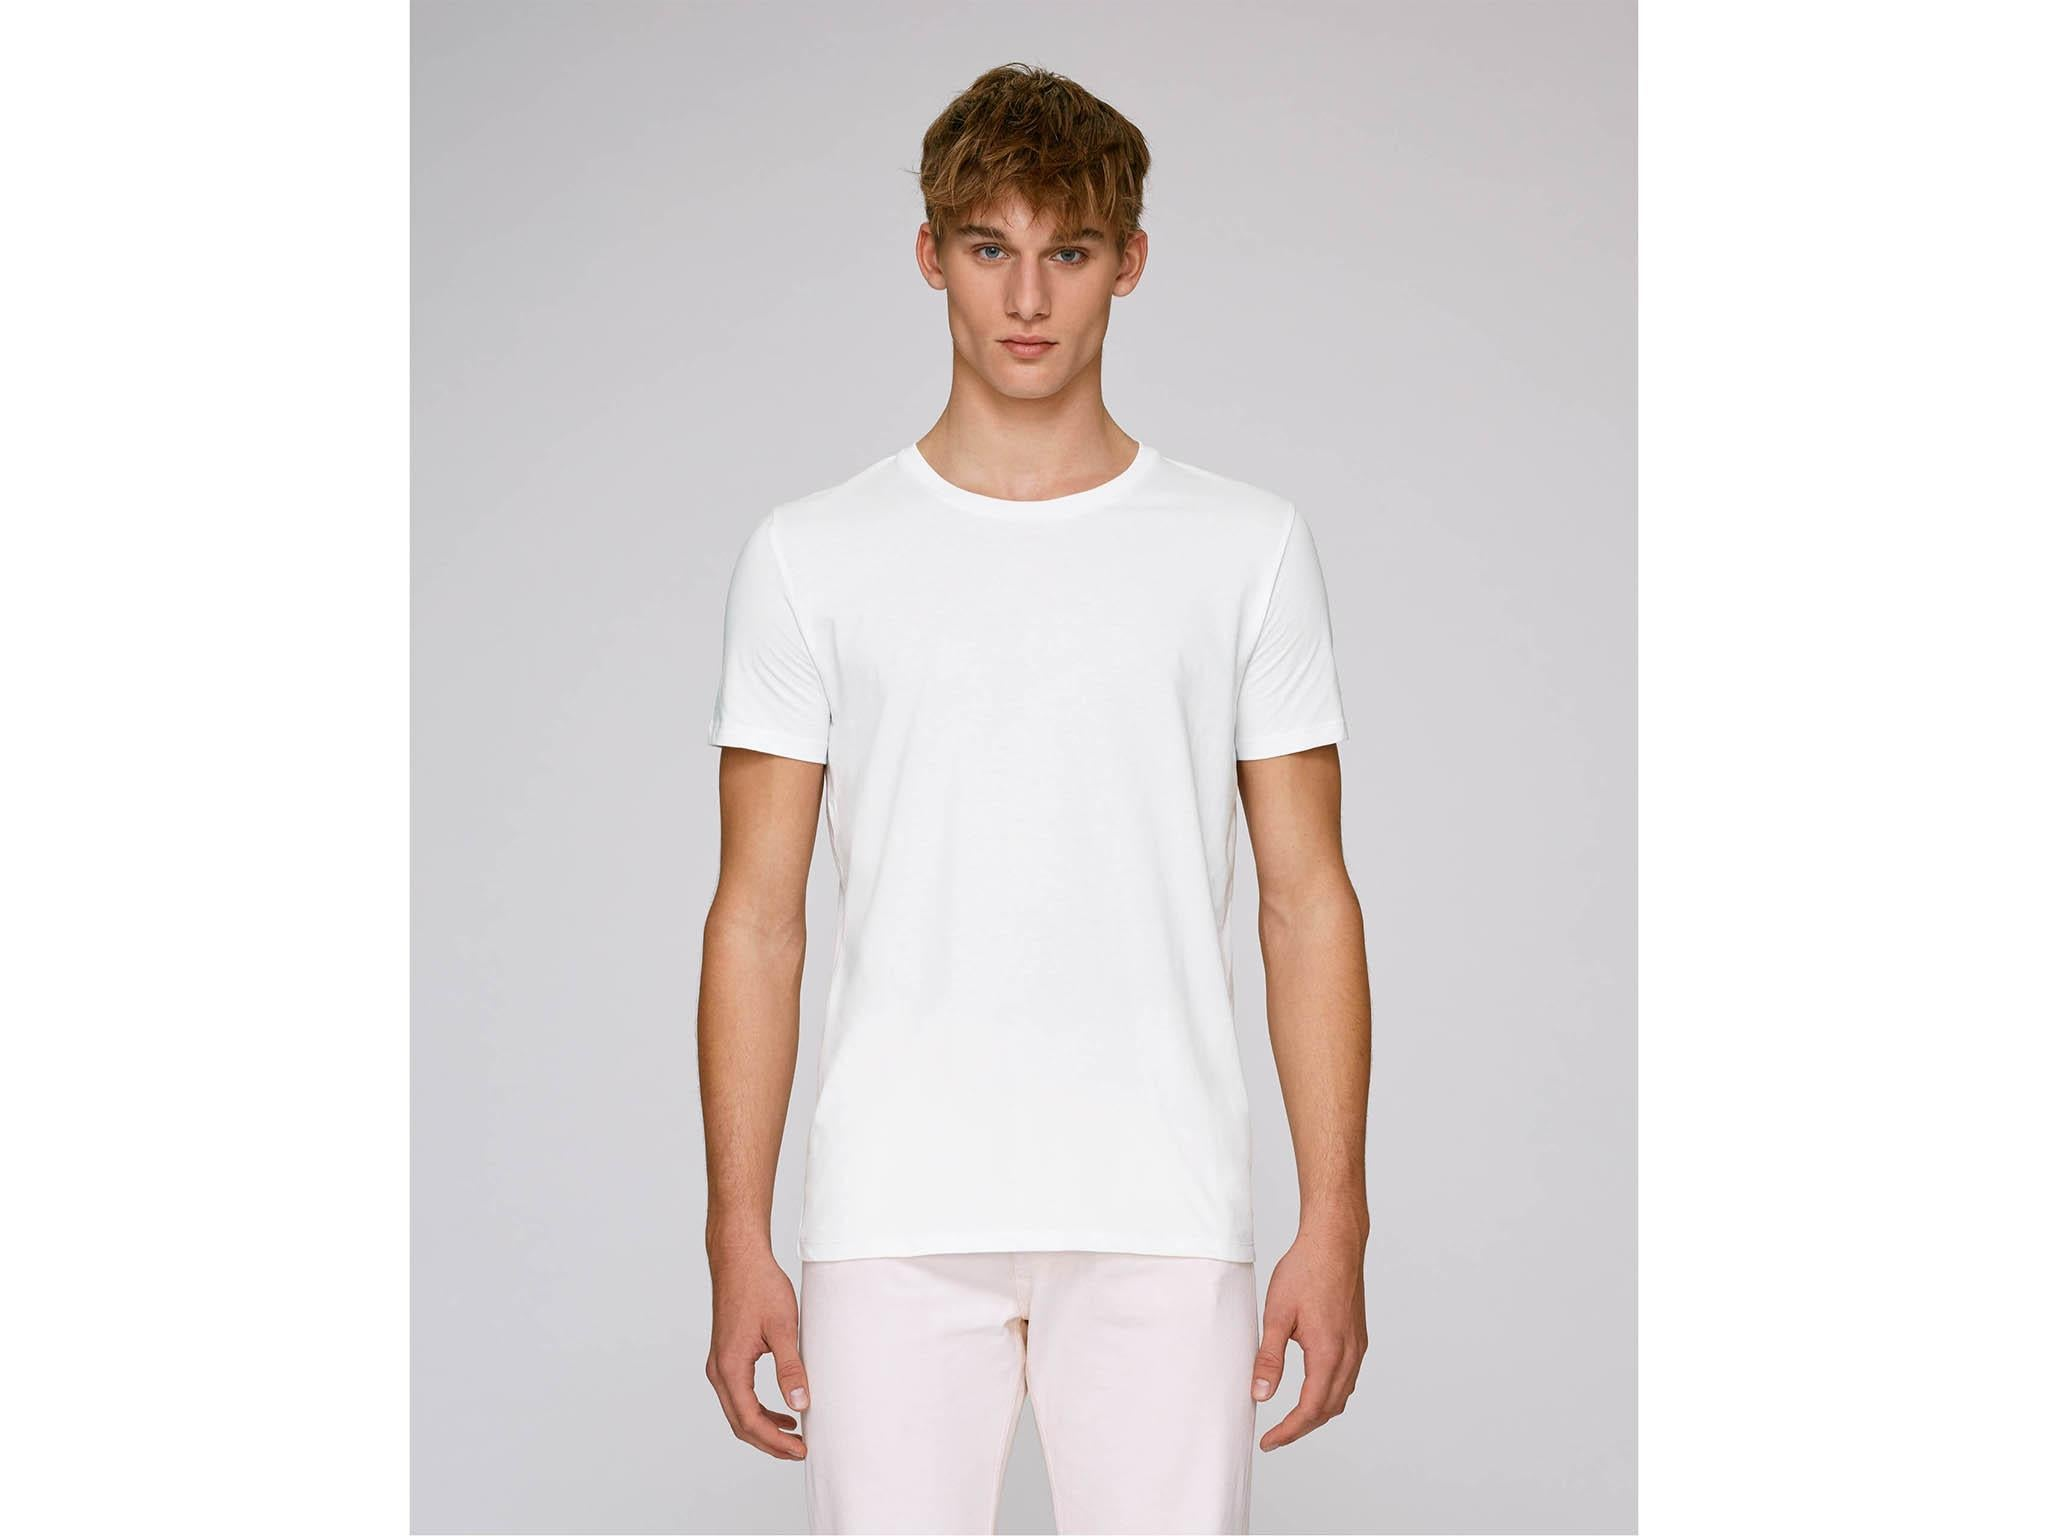 cbe62cdf5 13 best sustainable men's clothing brands that don't compromise on ...